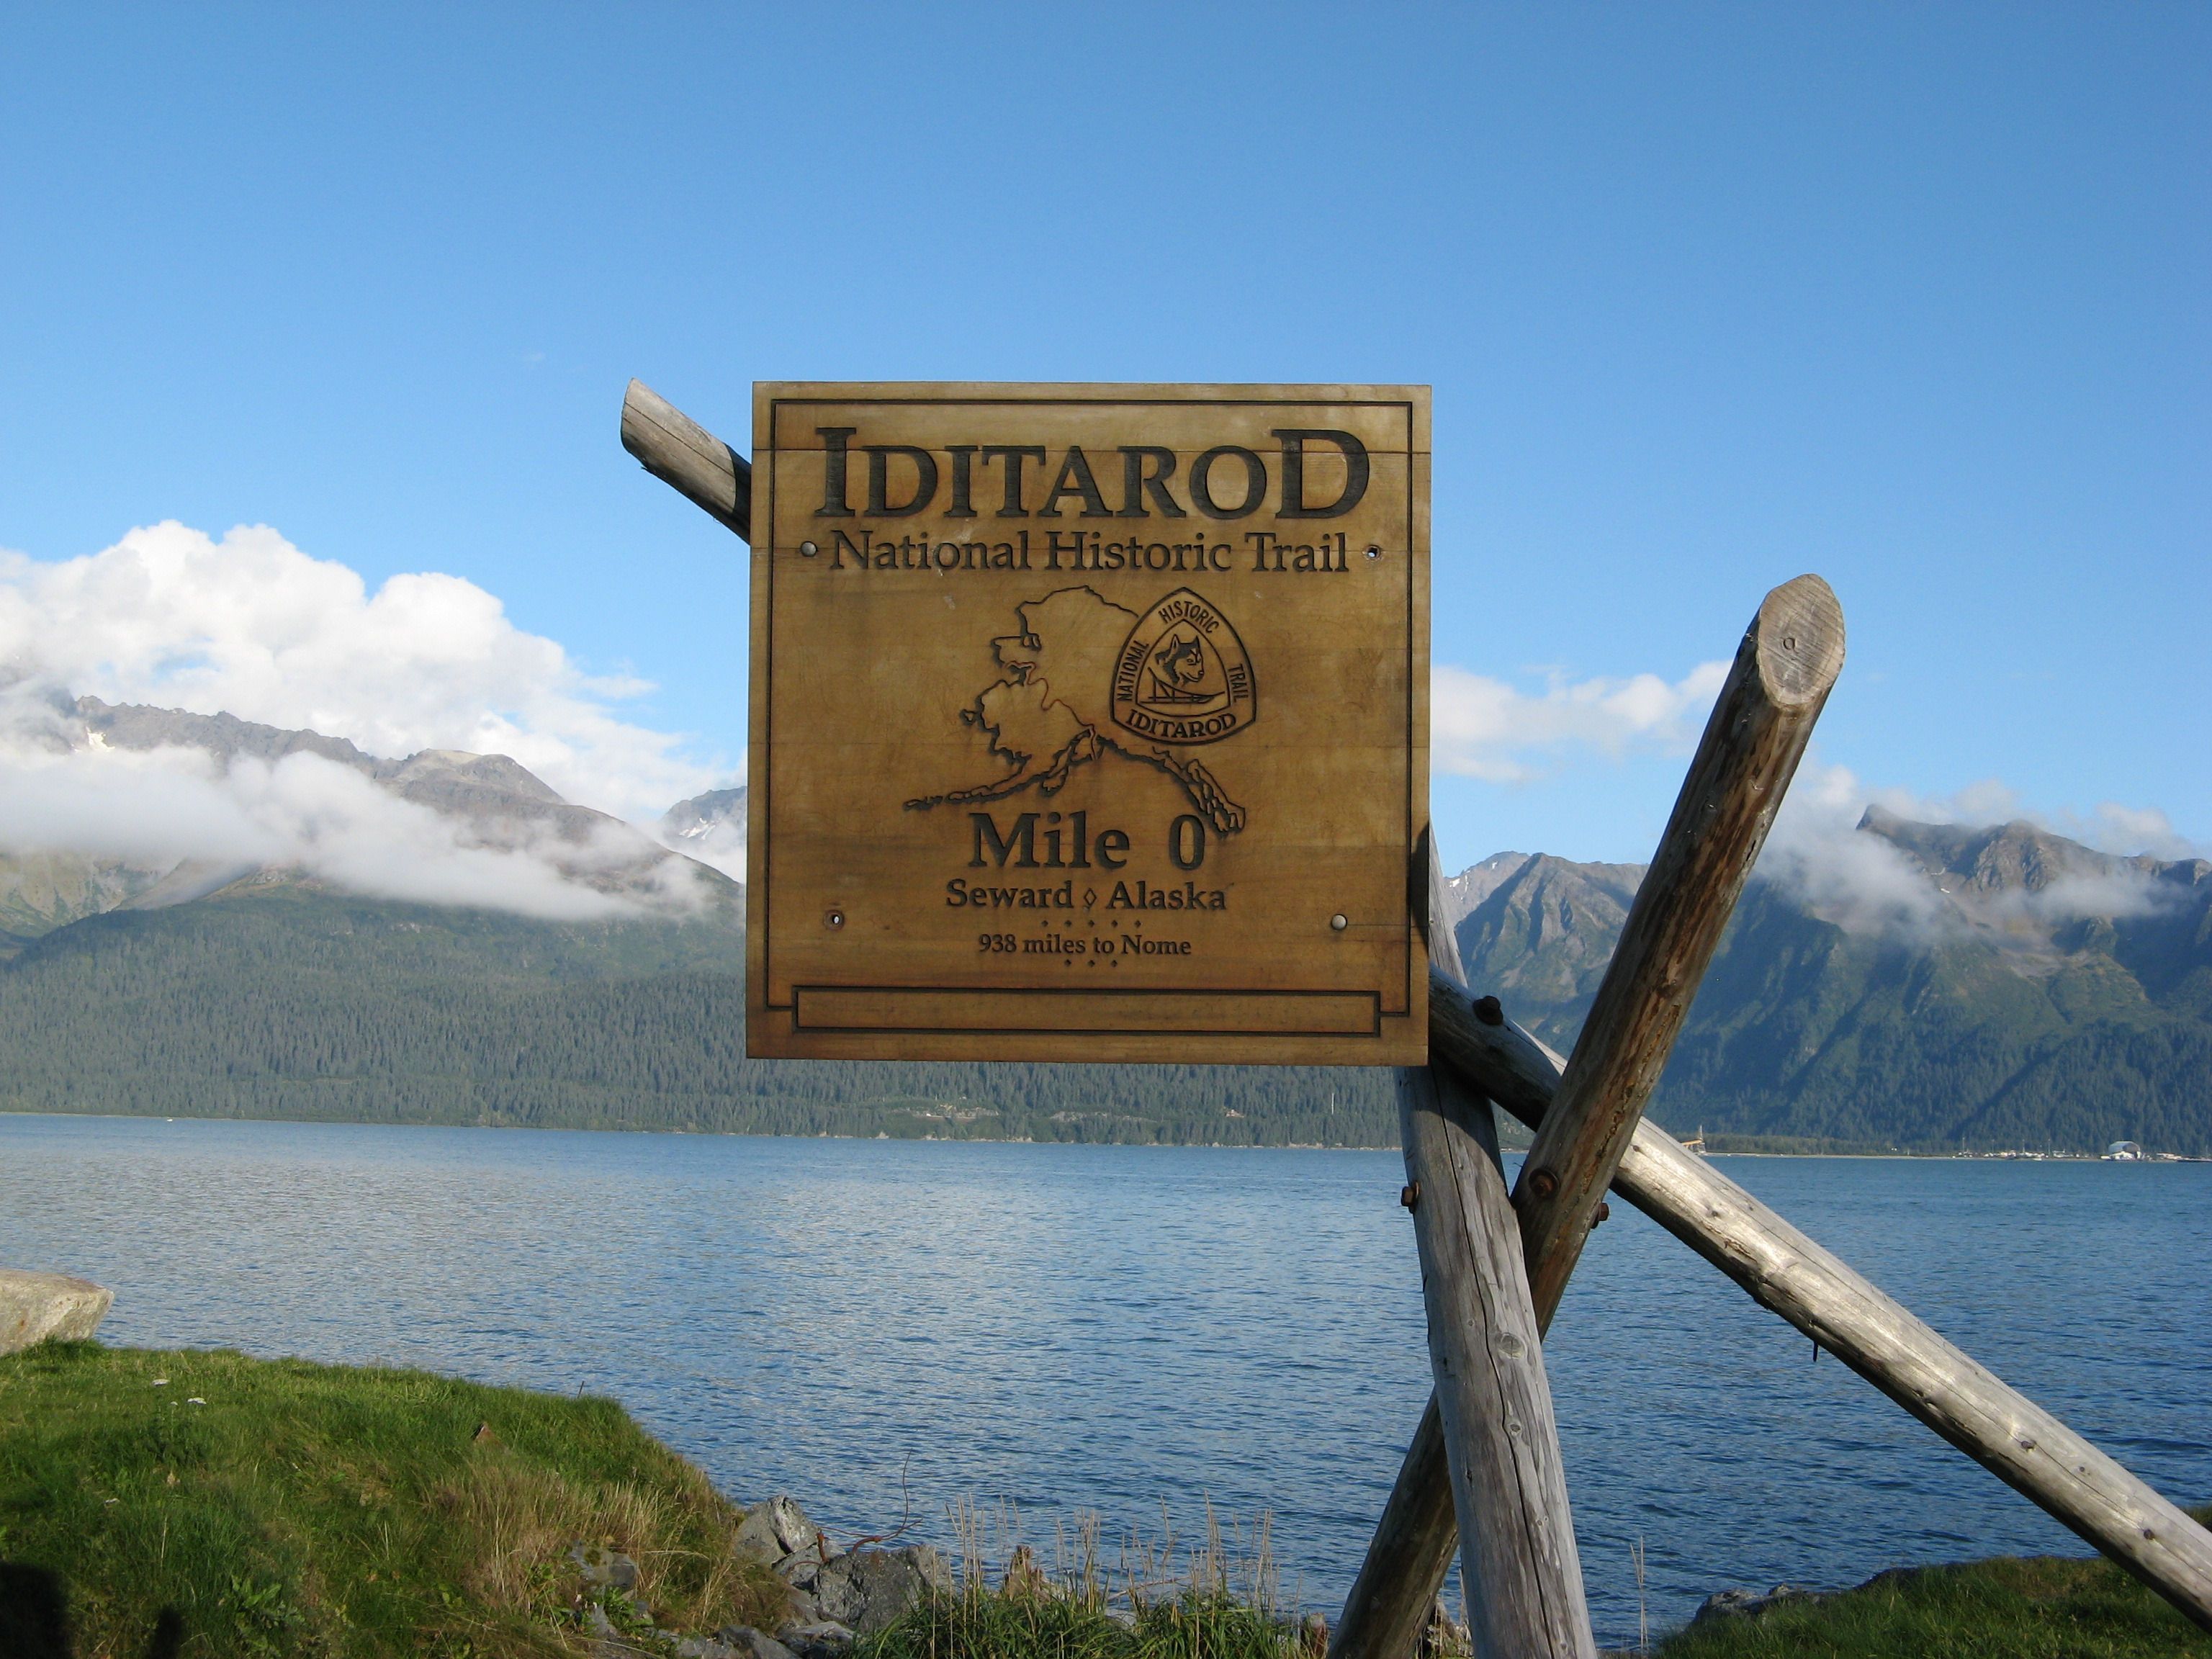 Iditarod Trail sign in Seward, Alaska.